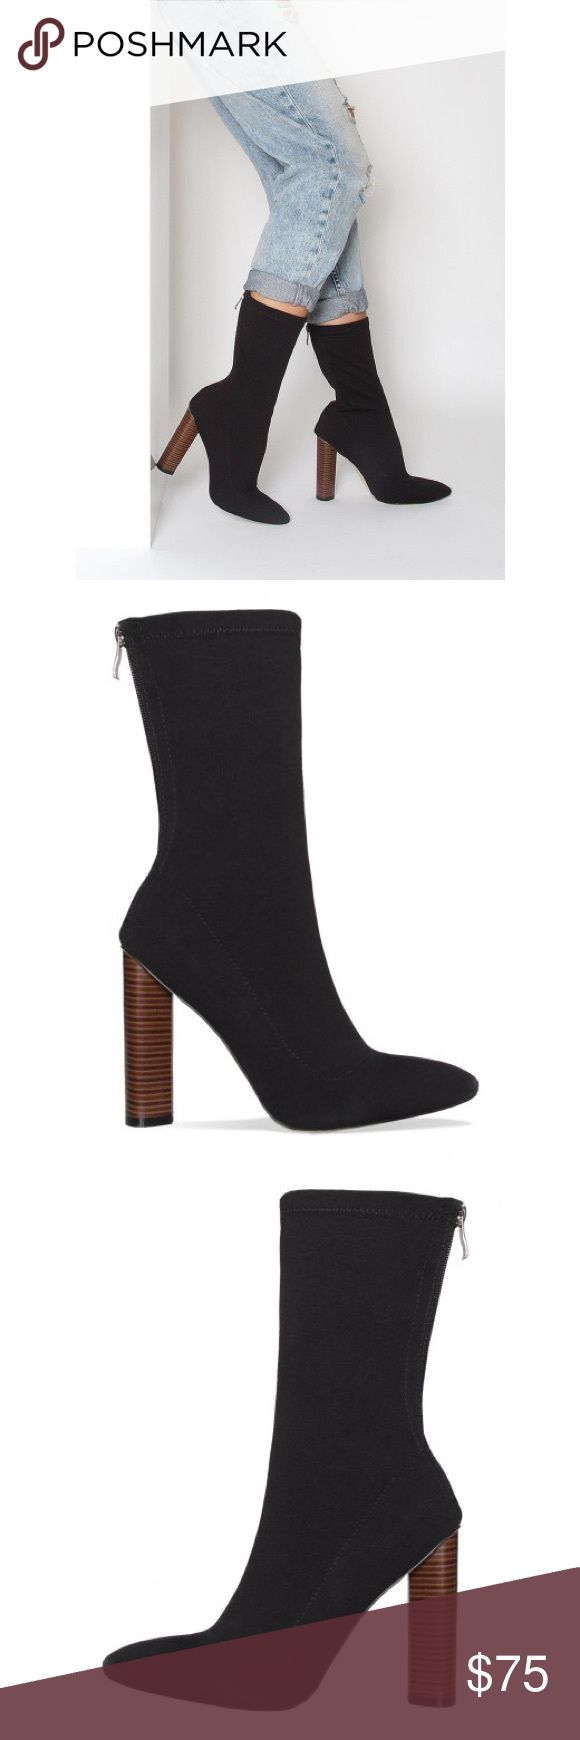 • NWT Black Bootie • NWT // Comes in box // Size 37 // 4 in. Heel // Lycra Material // Simmi Shoes Yeezy Shoes Heeled Boots